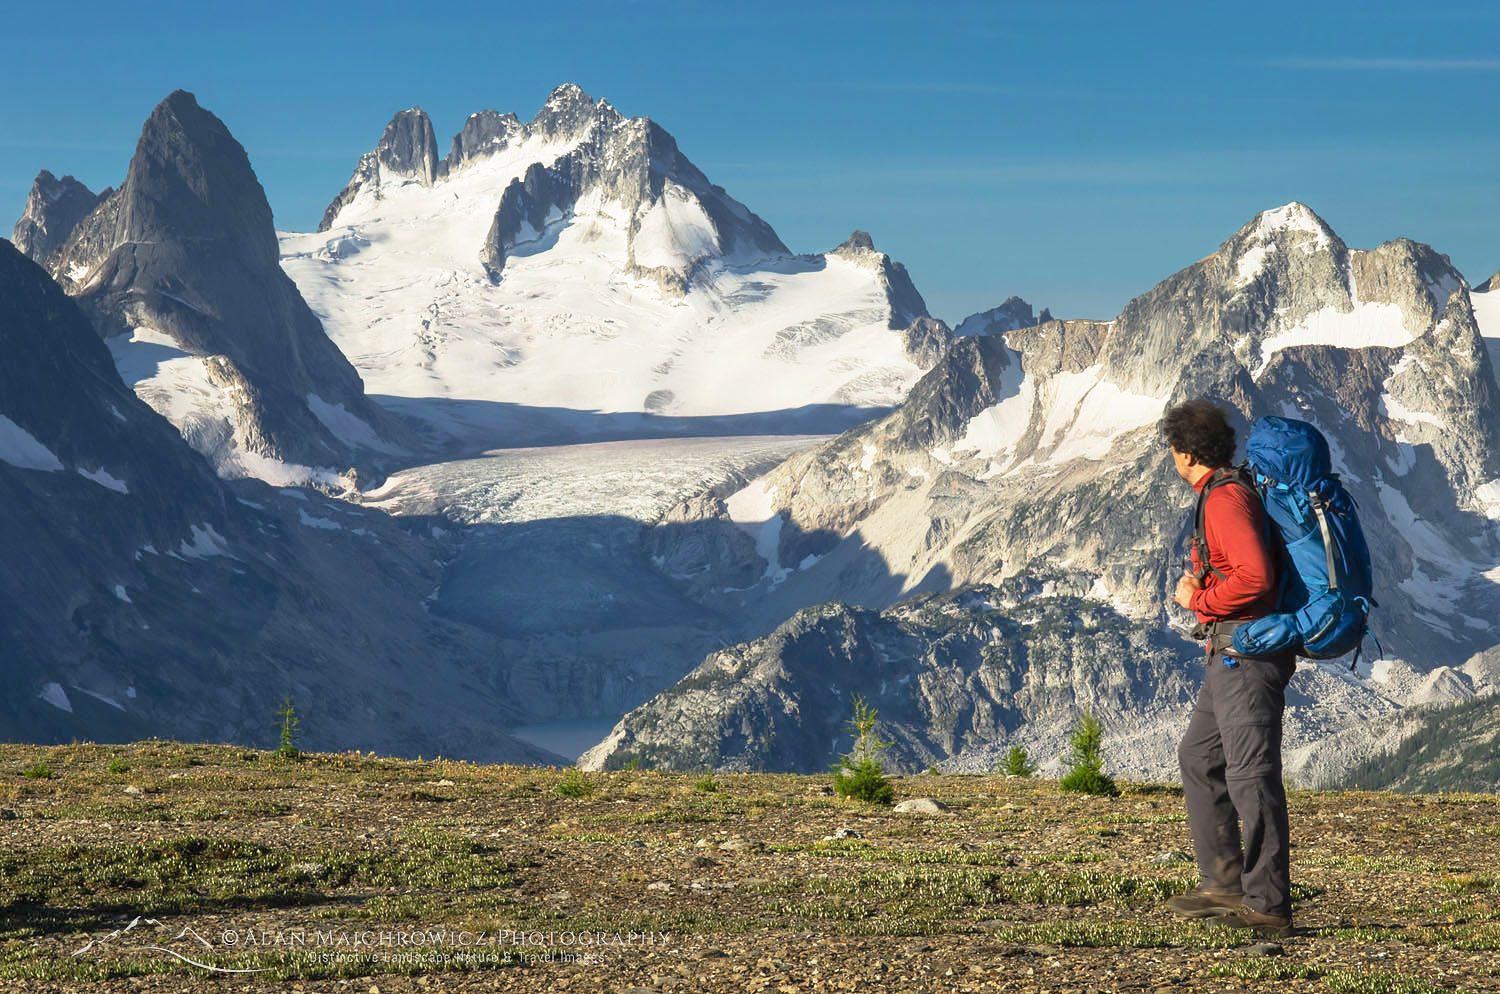 Backpacker Bugaboo Provincial Park Backpacking Photography Gear Tips